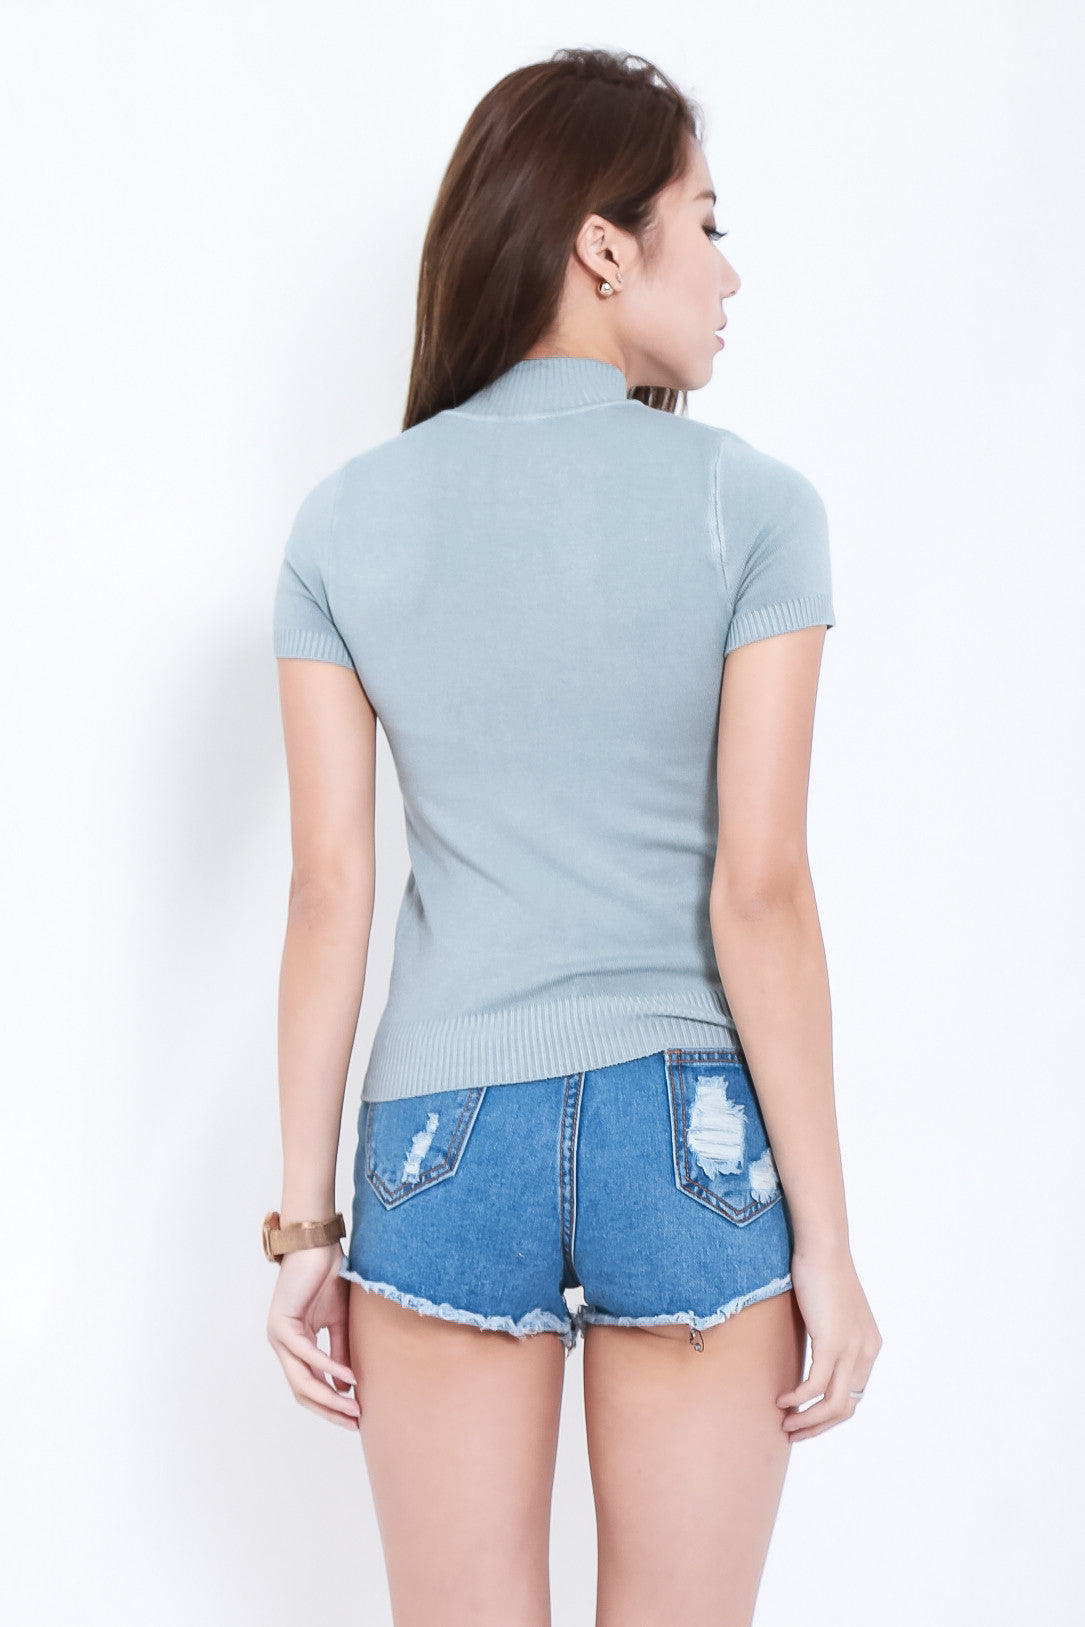 CHILL OUT HIGH NECK KNIT TOP IN GREY - TOPAZETTE